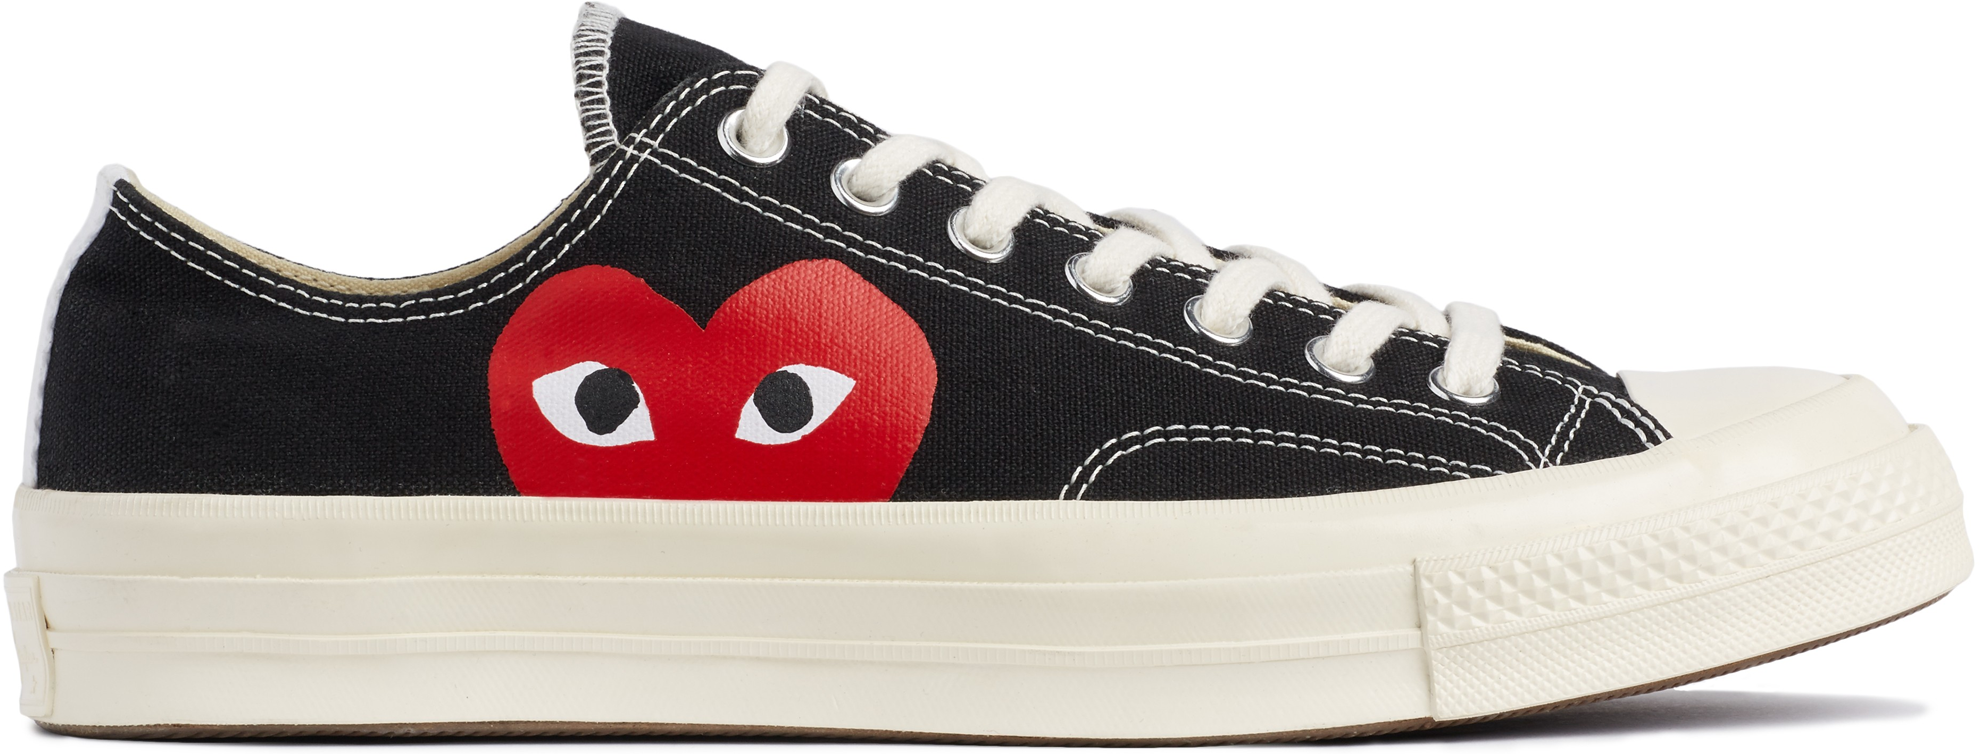 comme des garcons converse white images galleries with a bite. Black Bedroom Furniture Sets. Home Design Ideas